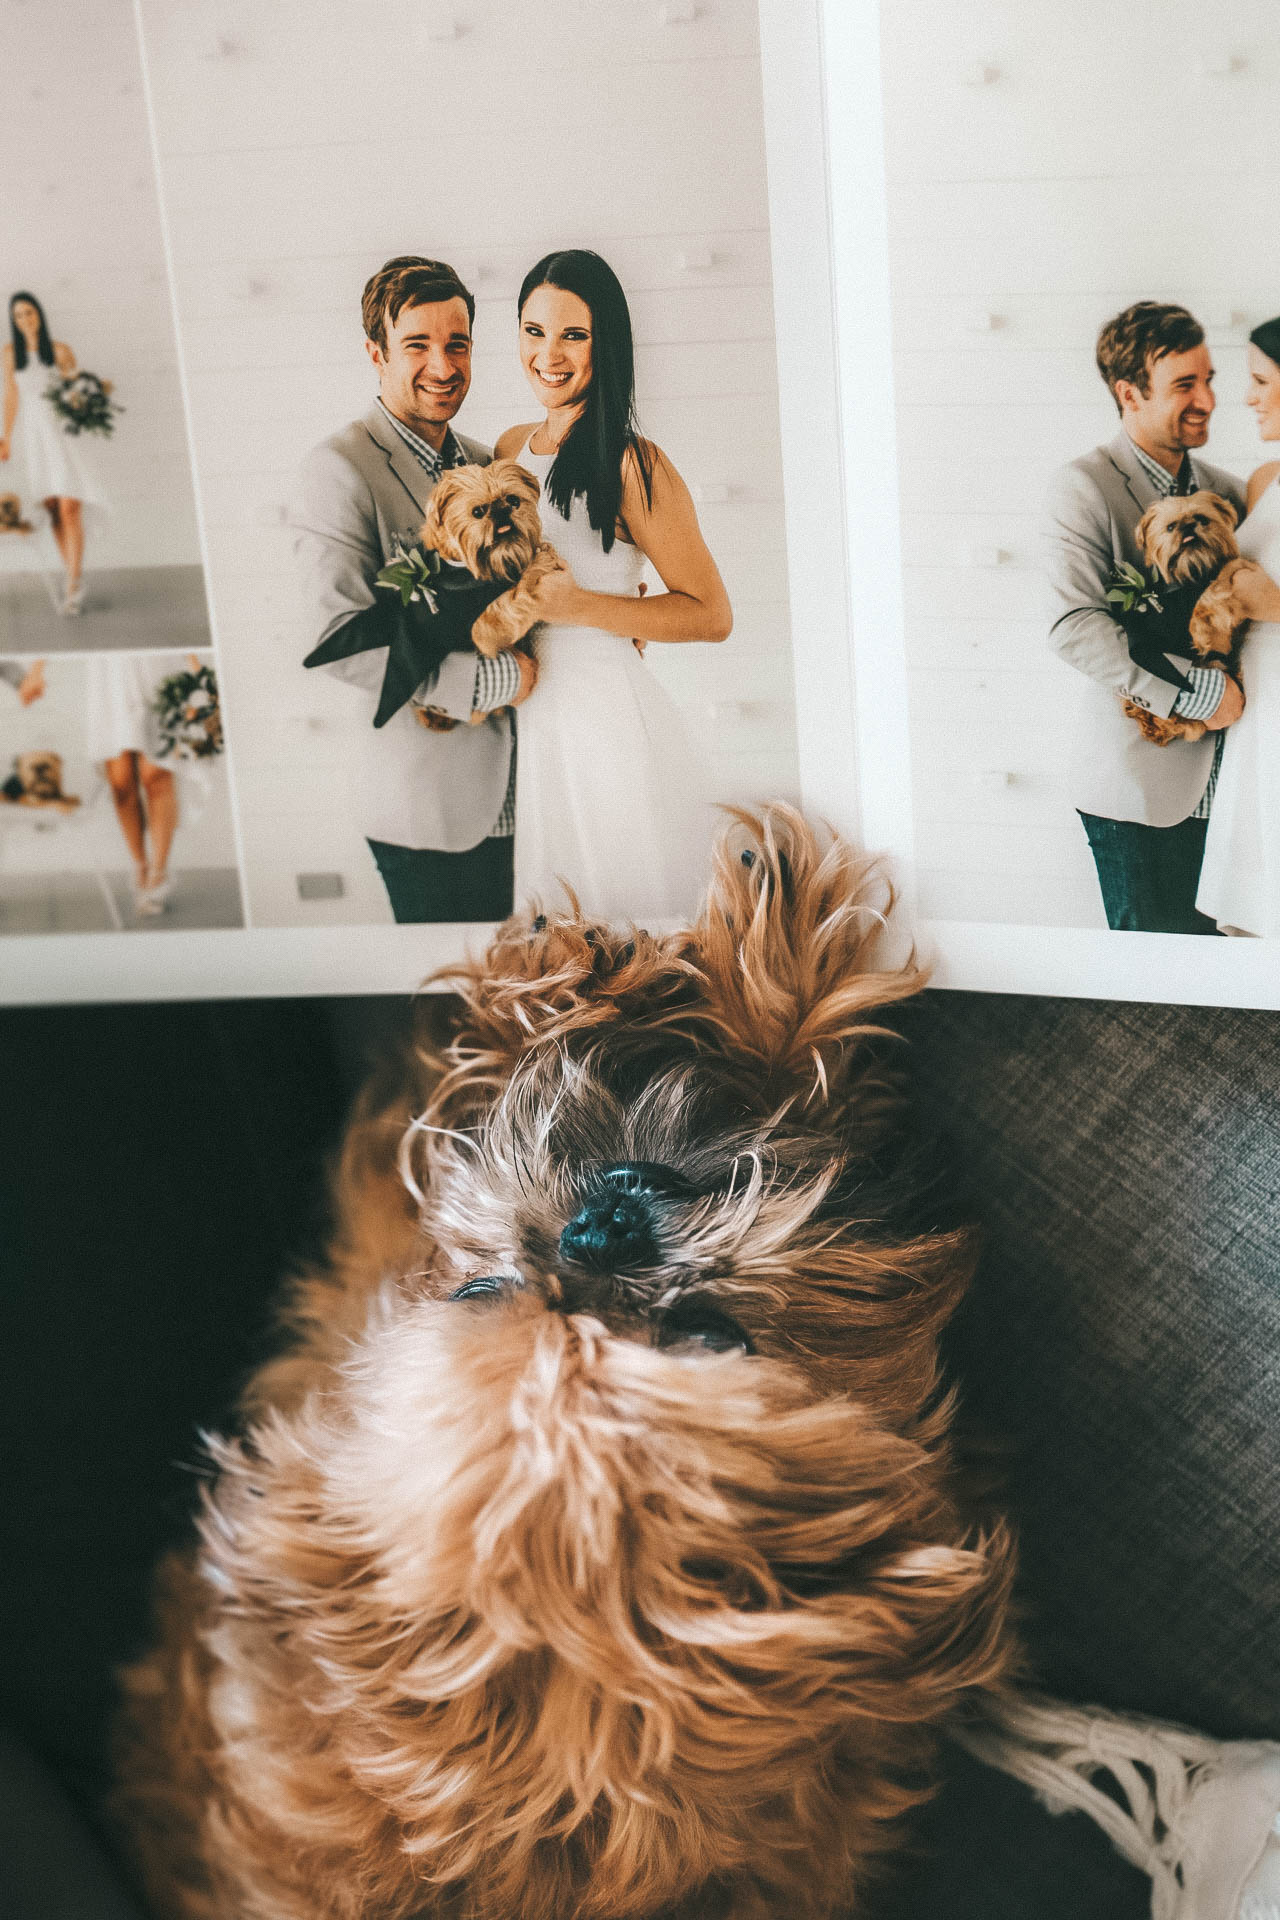 Wedding Photos | Wedding Inspiration | Custom Photo Album | Custom Memory Album | Affordable Photo Album | Online Photo Album | Nations Photo Lab | Creative Gift Ideas | The Goff's Custom Wedding Album featured by top Austin lifestyle blog Dressed to Kill